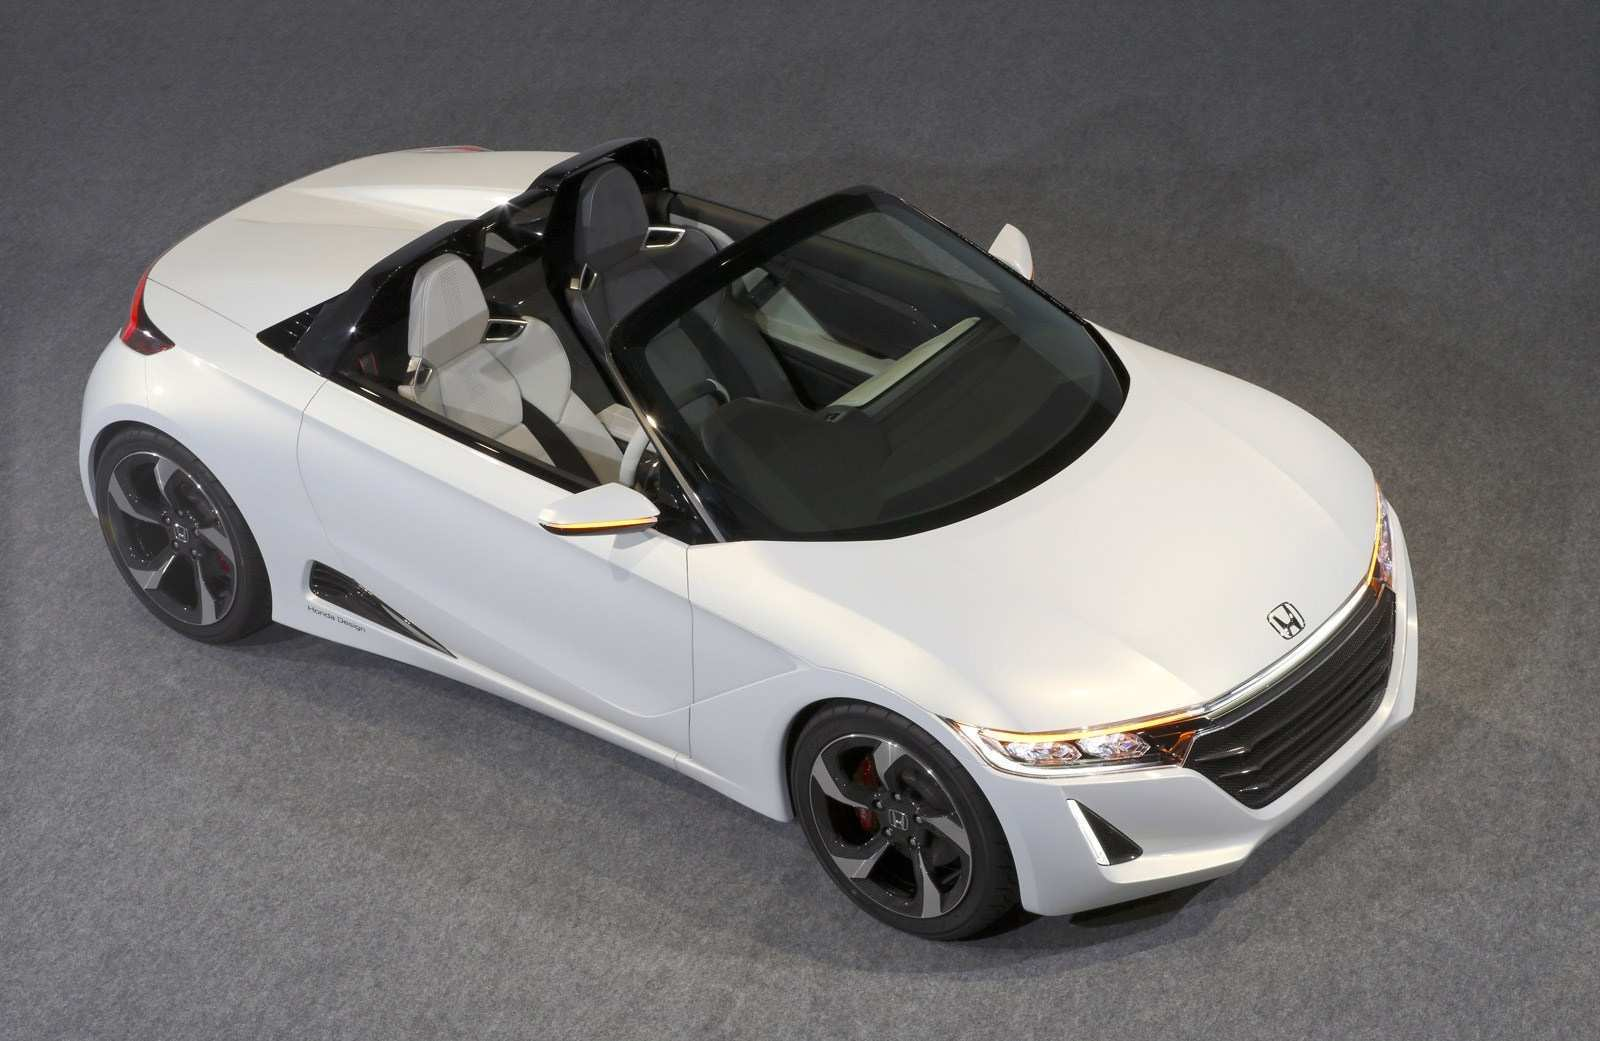 70 Great 2020 Honda S660 Exterior and Interior for 2020 Honda S660